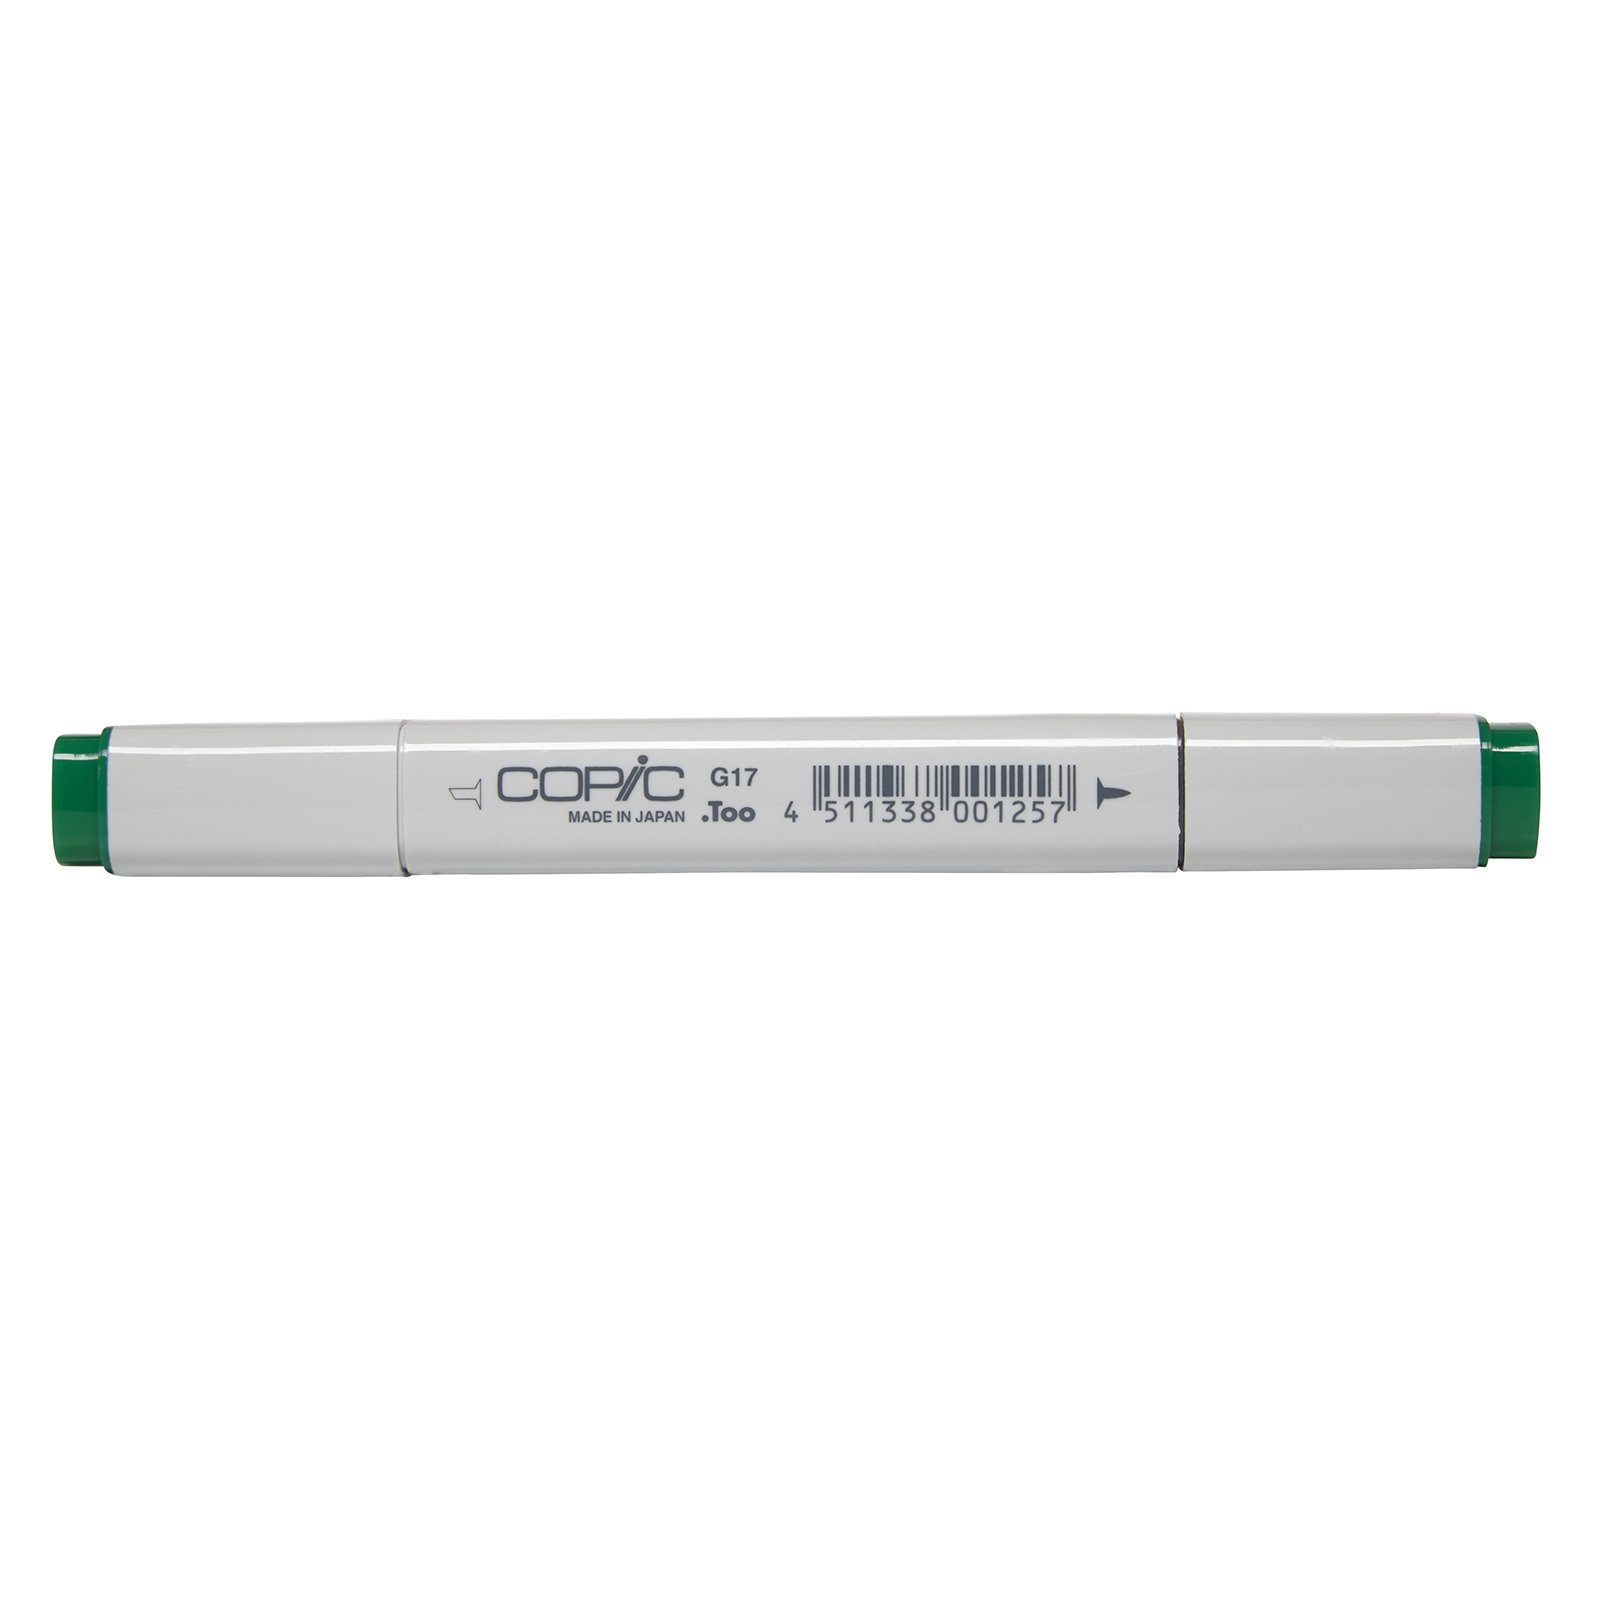 Copic Marker with Replaceable Nib, G17-Copic, Forest Green